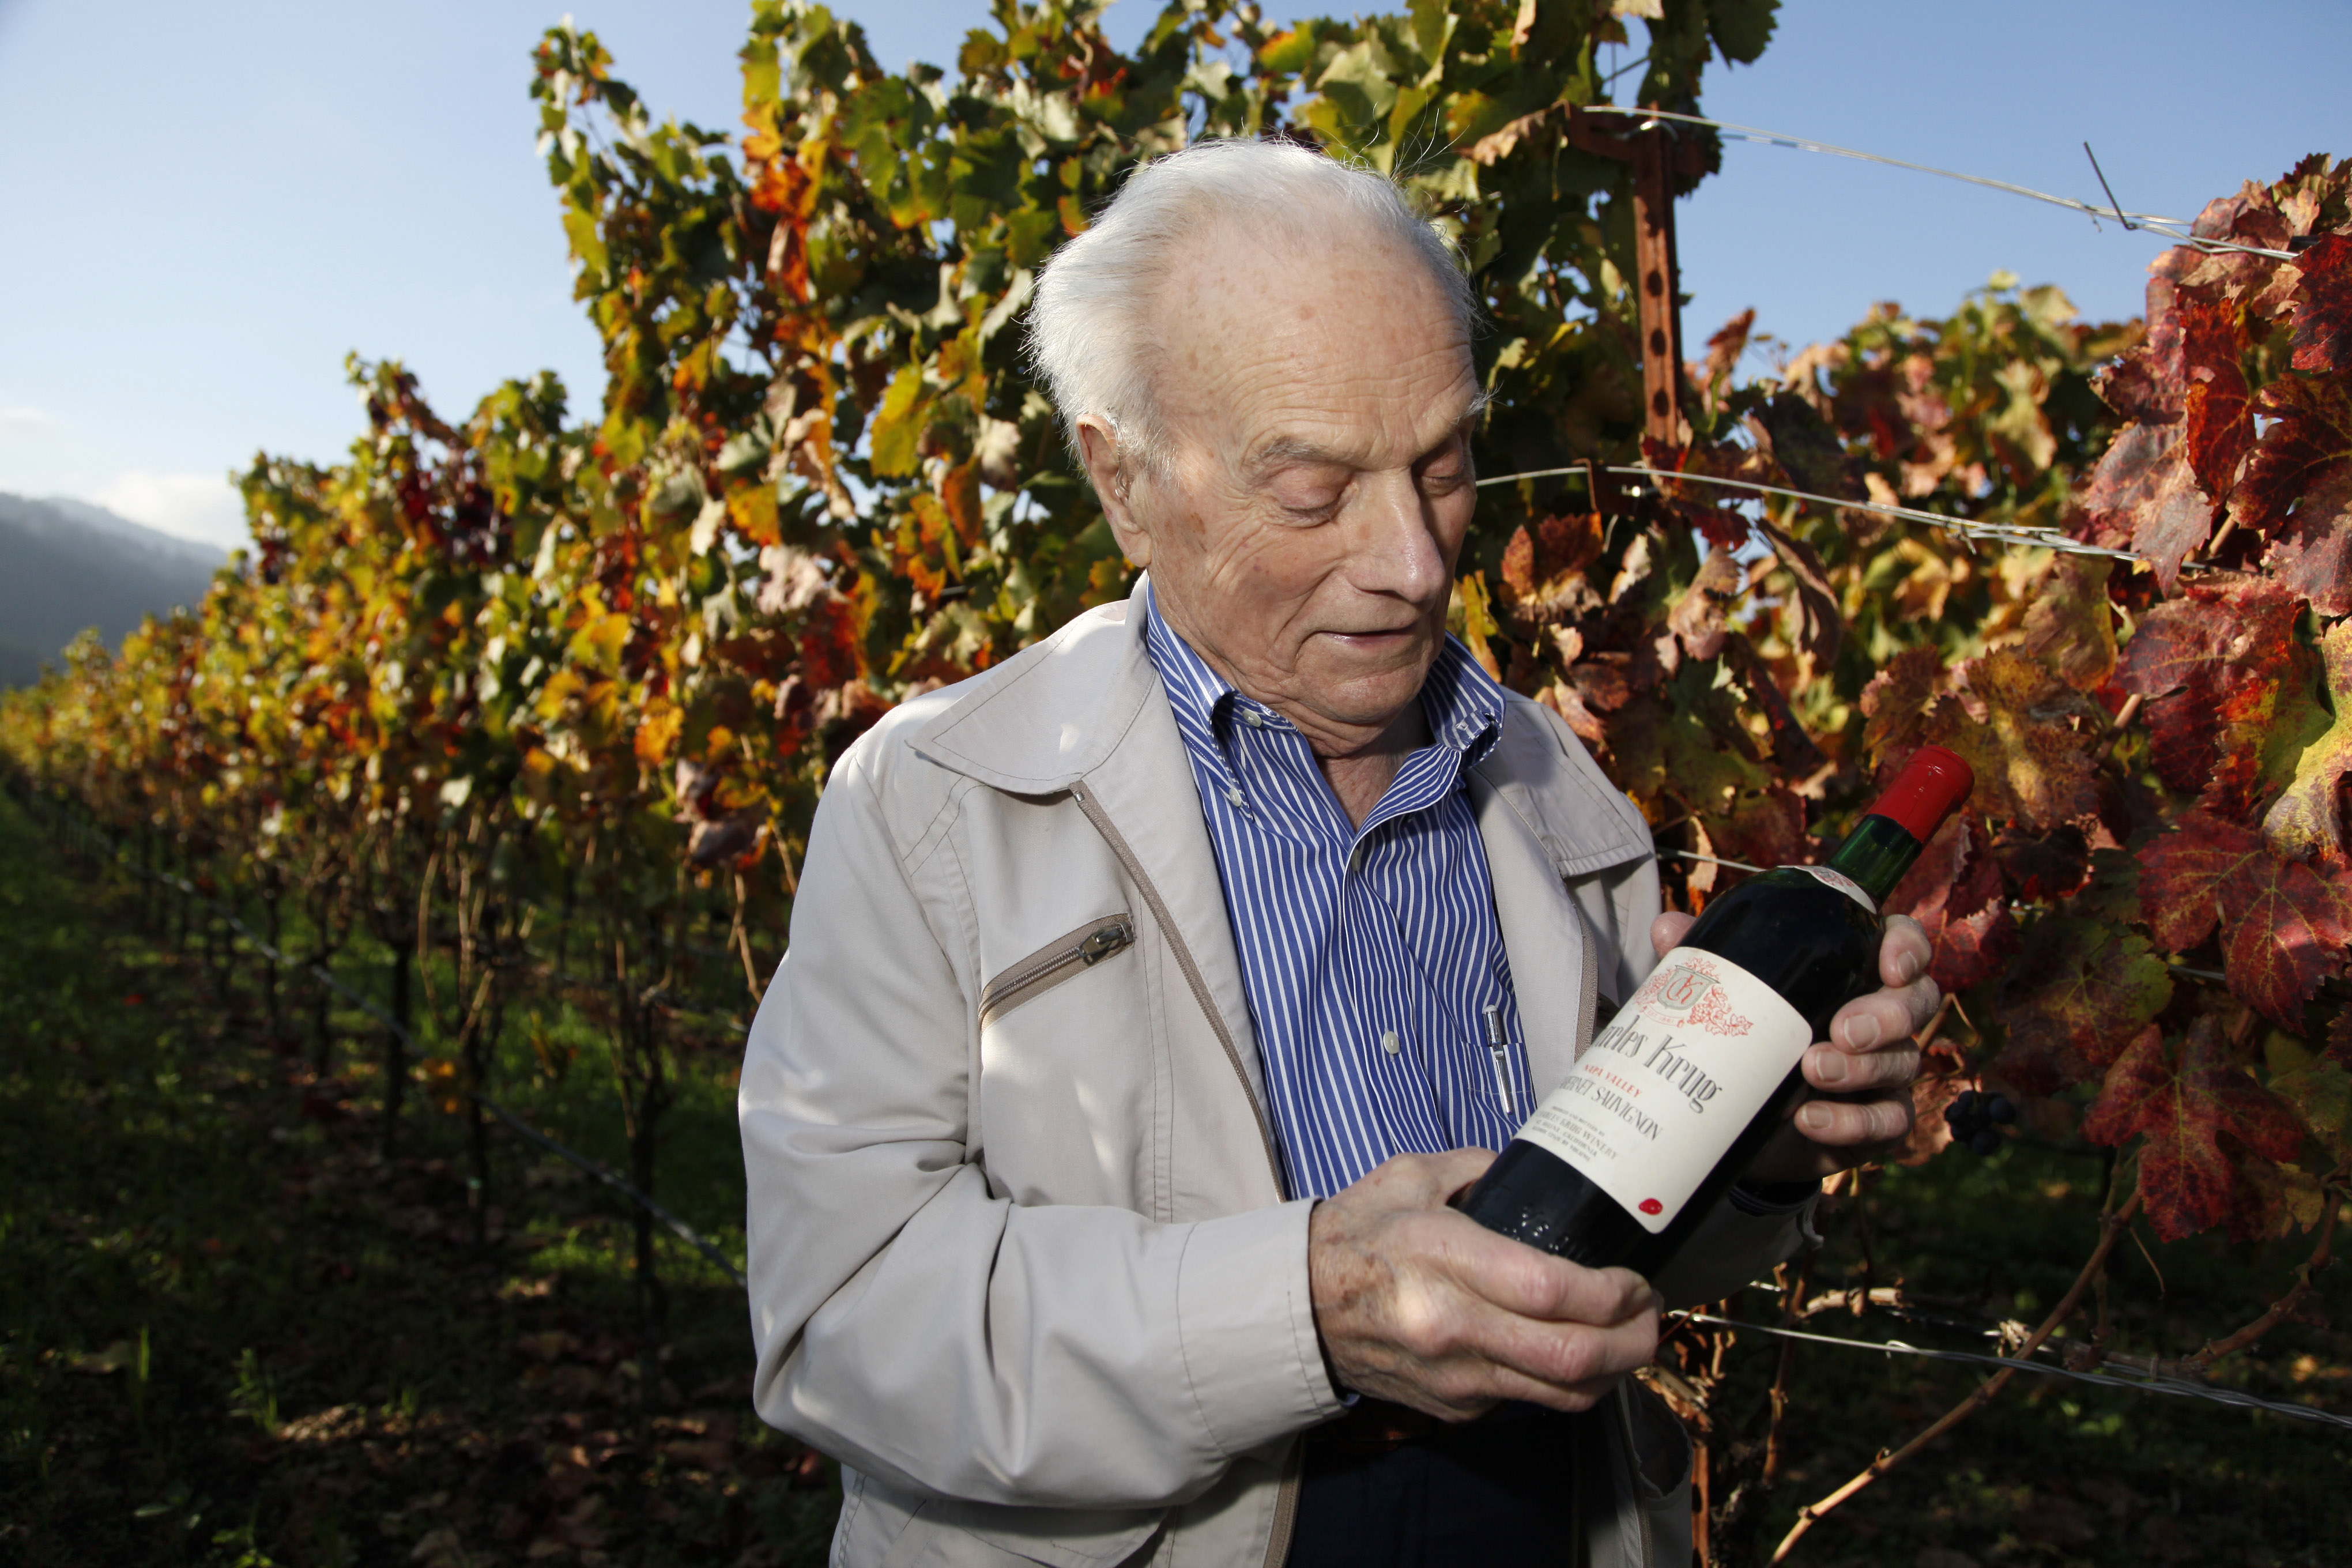 Peter Mondavi Sr. looks at a bottle of 1944 Charles Krug Cabernet Sauvignon, the first his family produced, while standing in a vineyard at the winery...